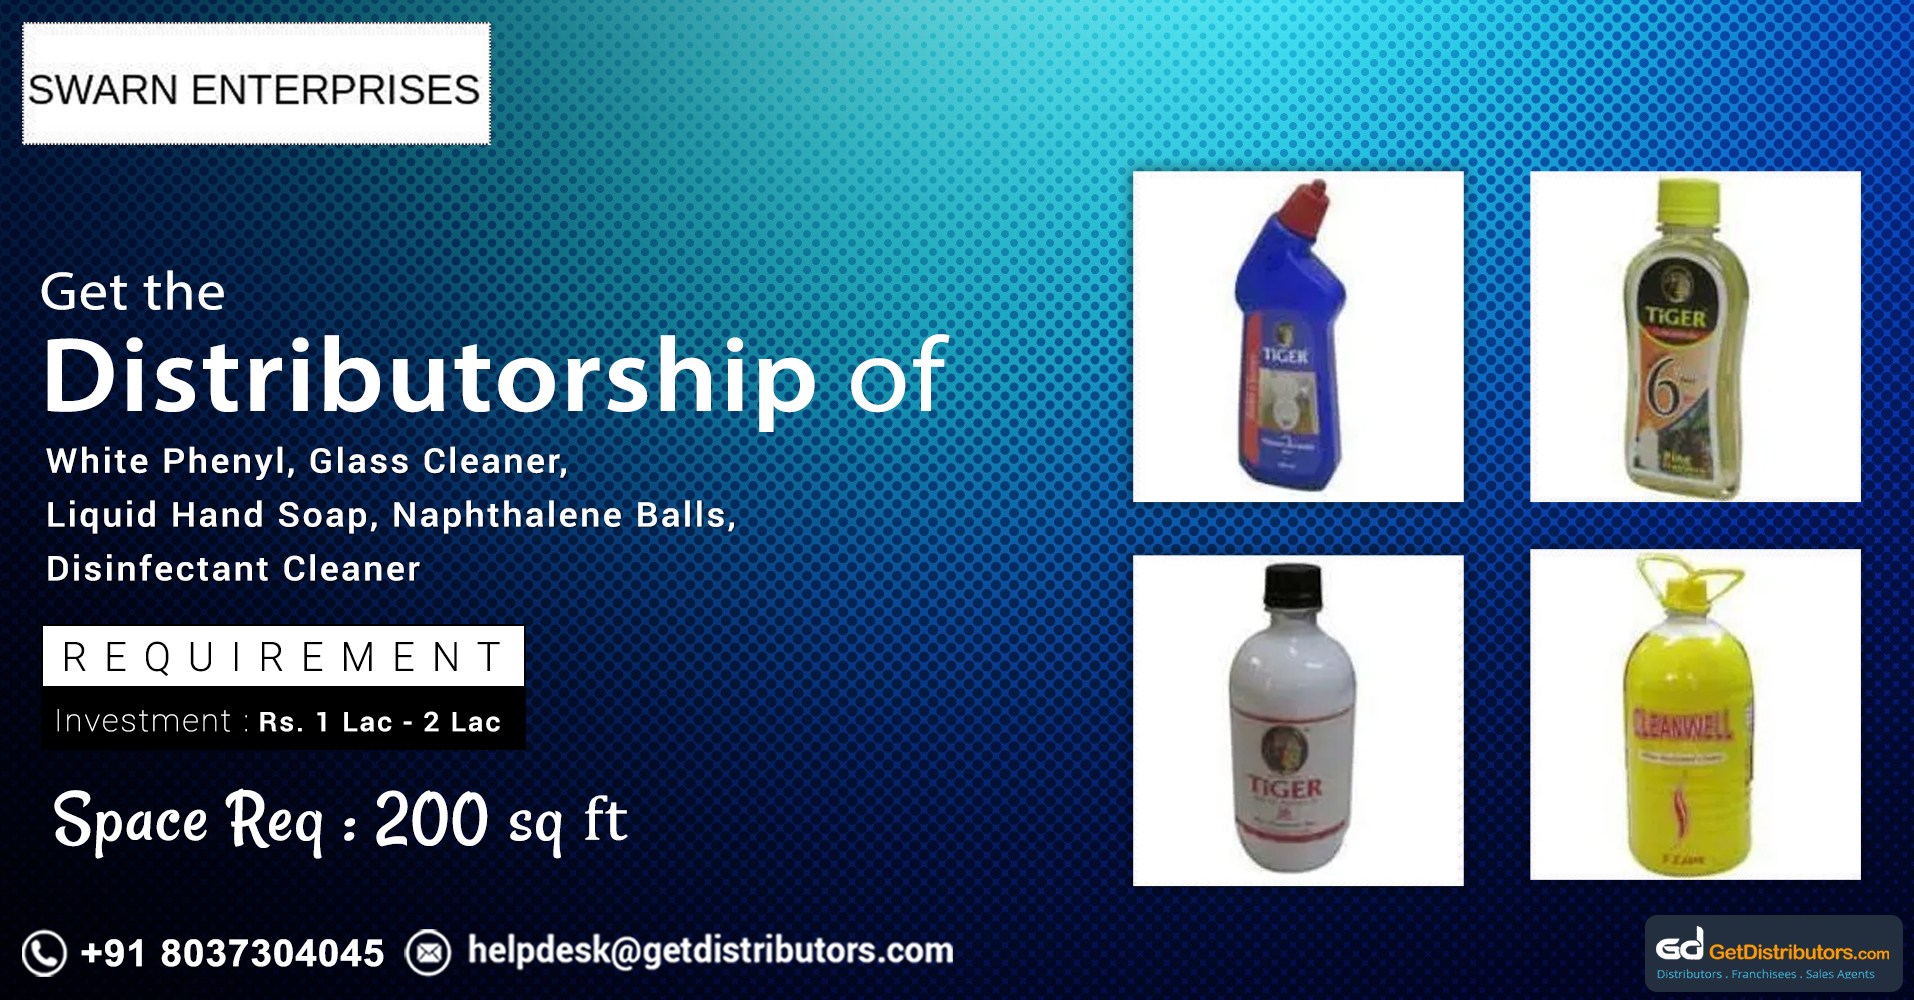 Wide range of cleaners and housekeeping supplies for distribution